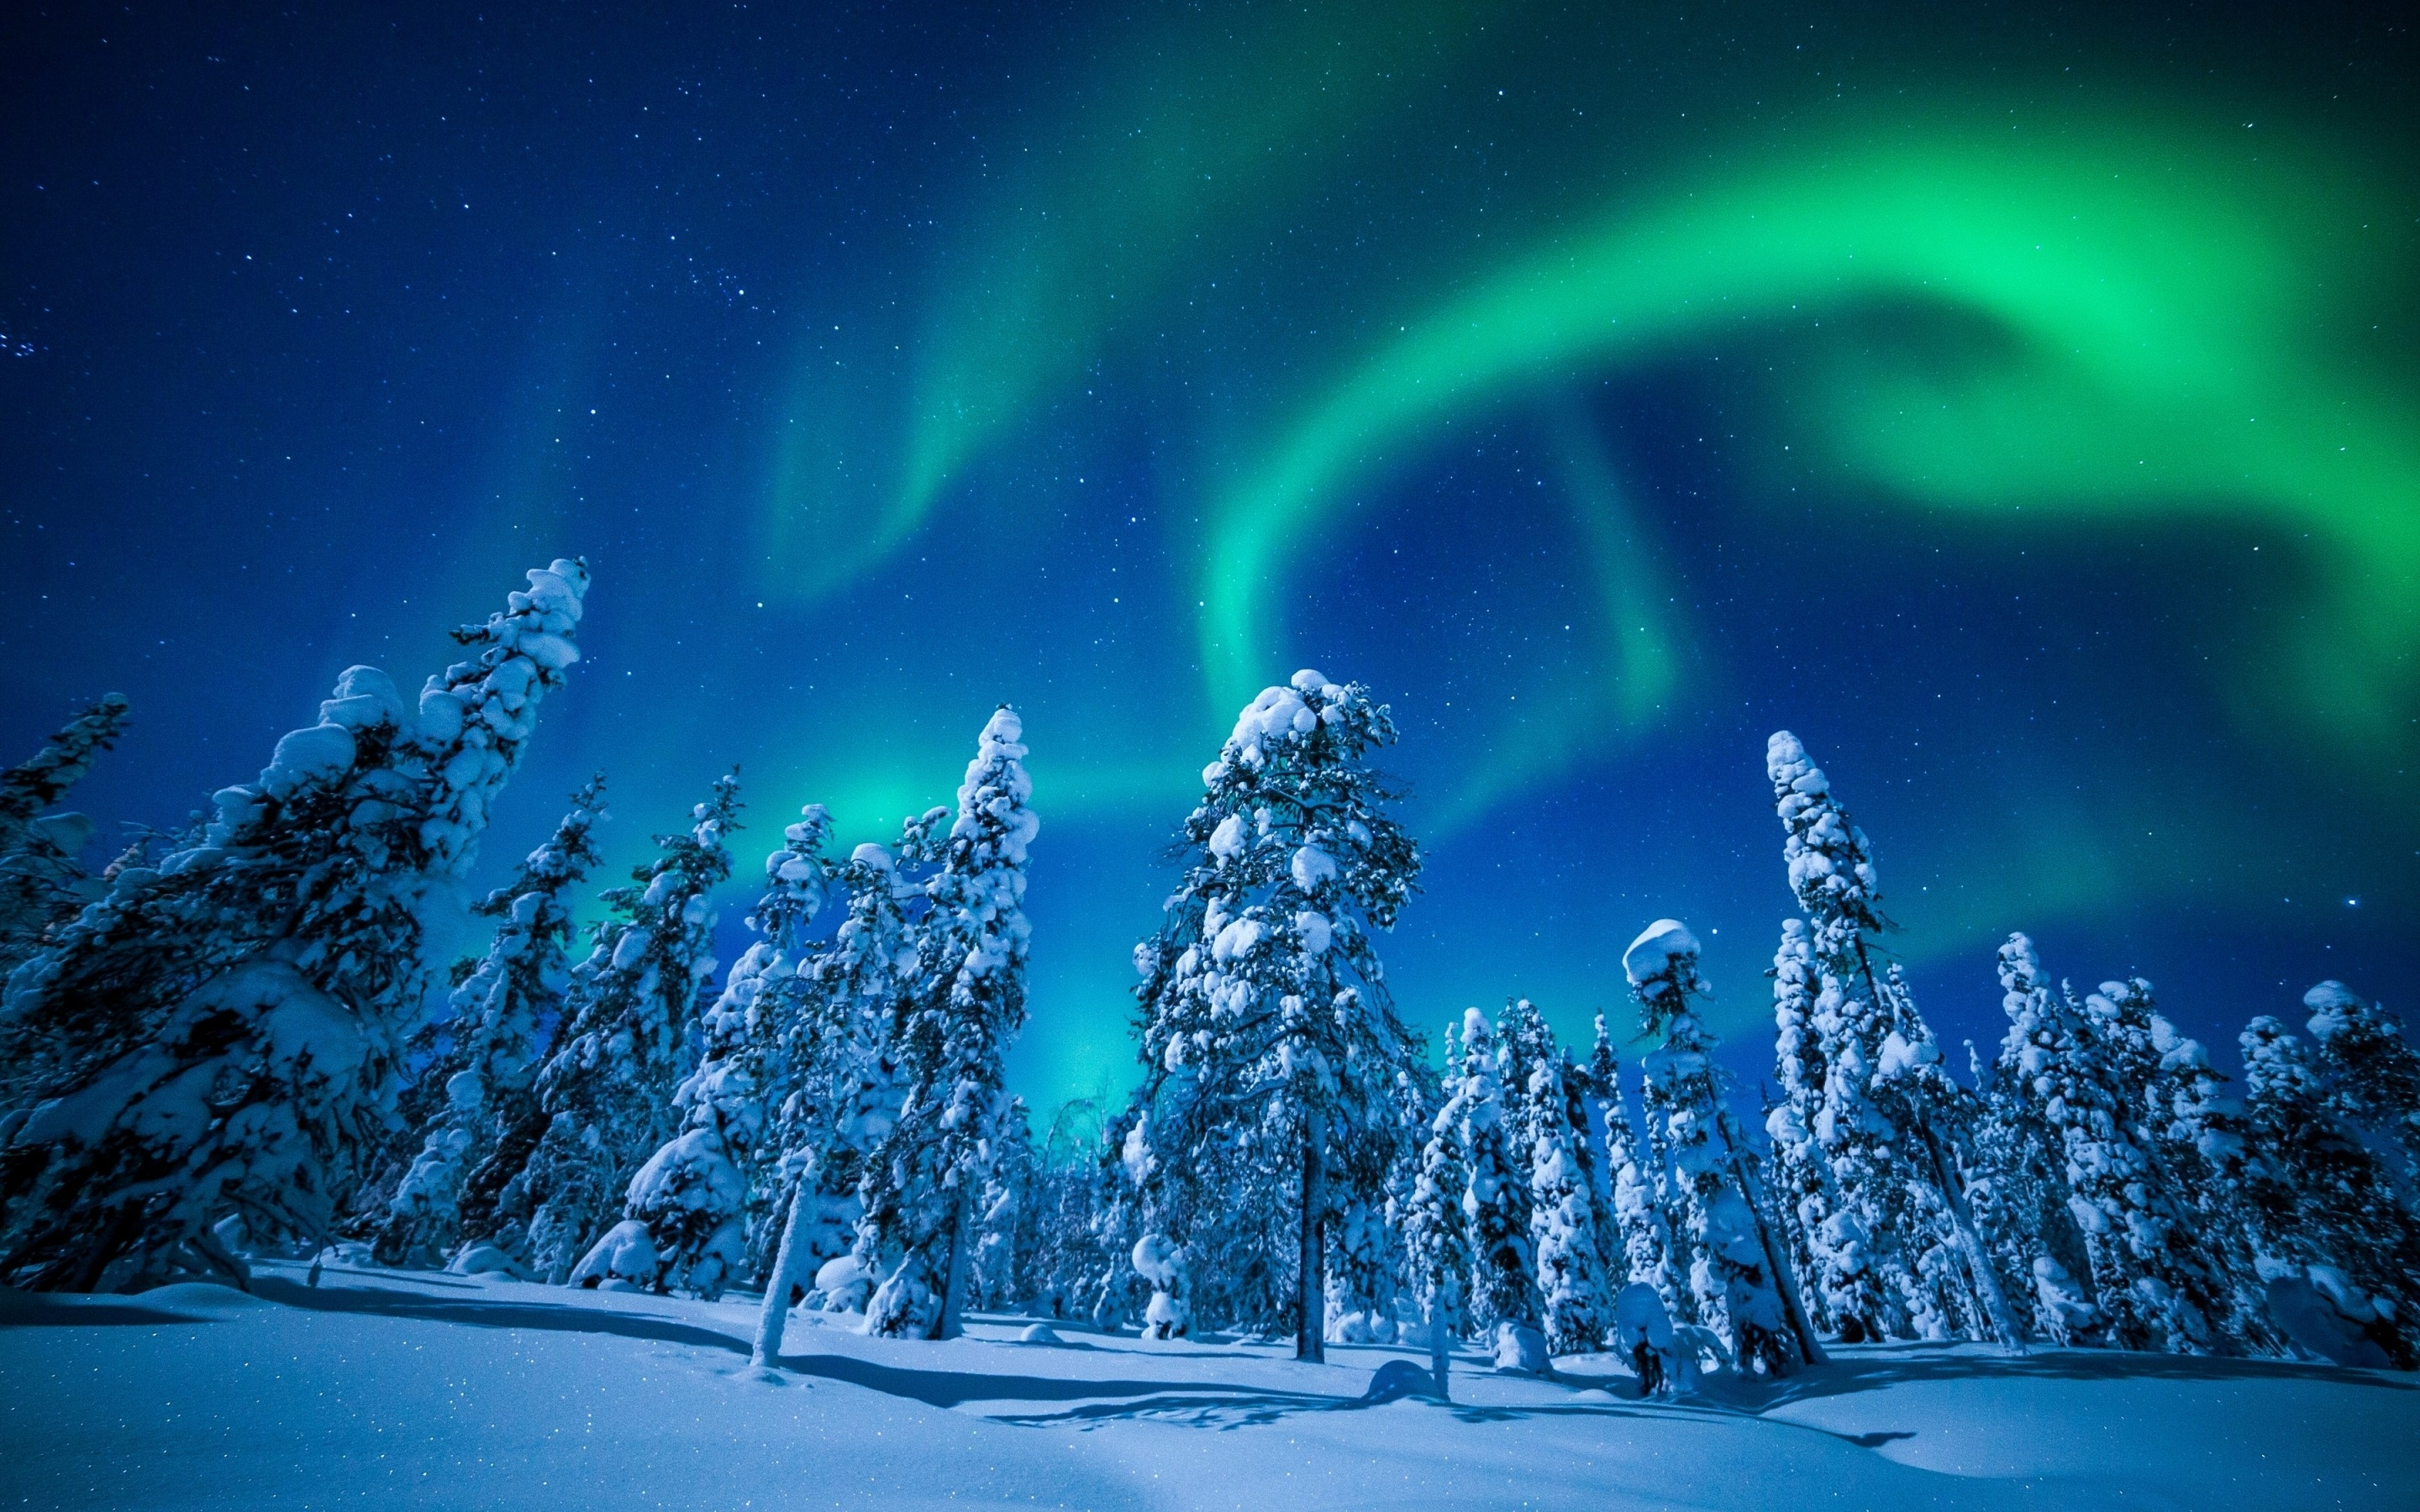 wallpaper forest, winter, frosted trees, aurora borealis, northern